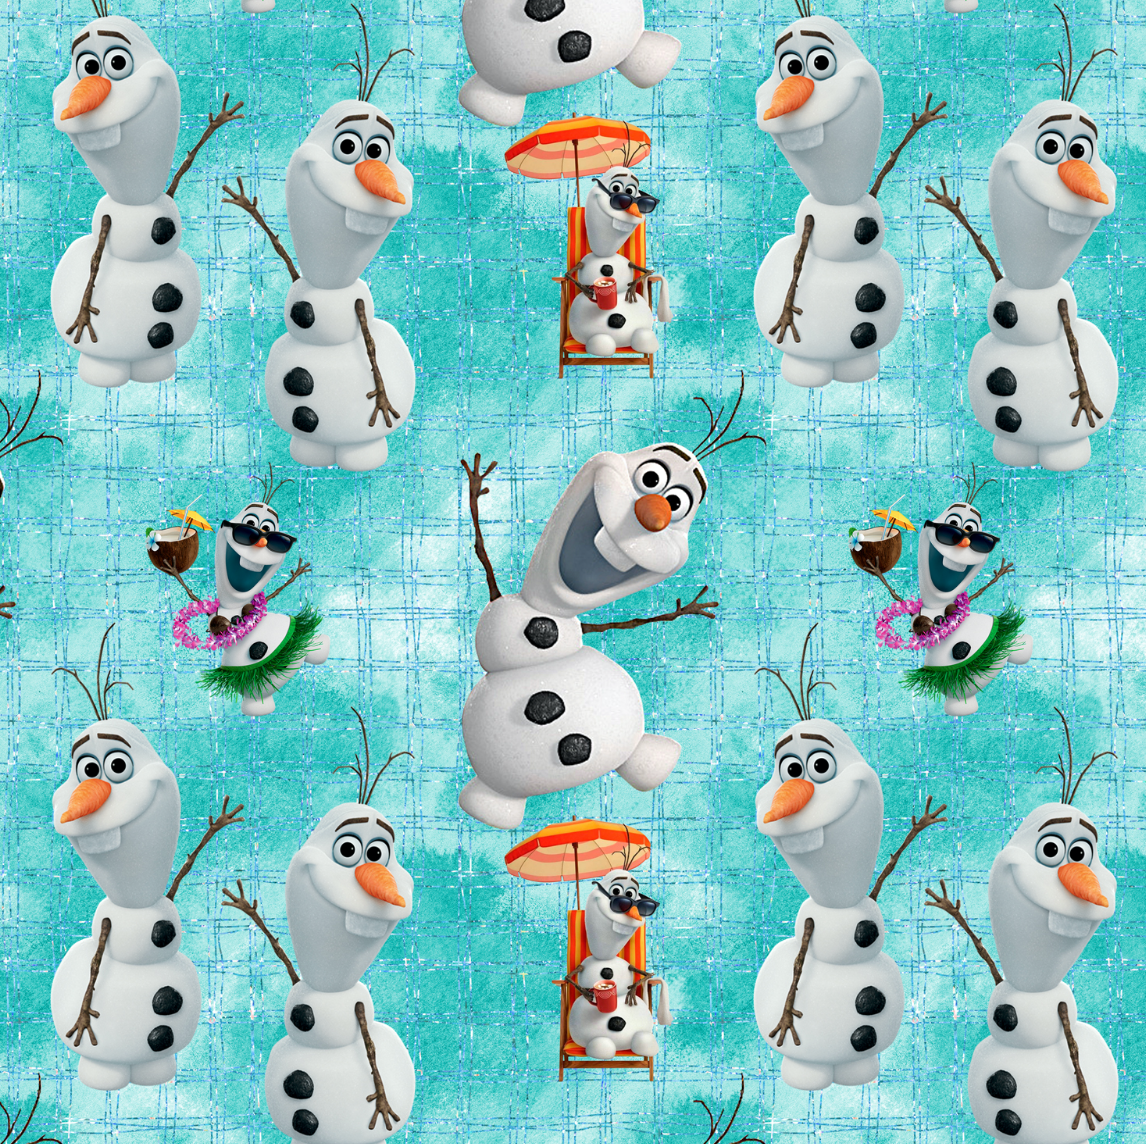 PRE ORDER - Frozen 2 Olaf - Digital Fabric Print